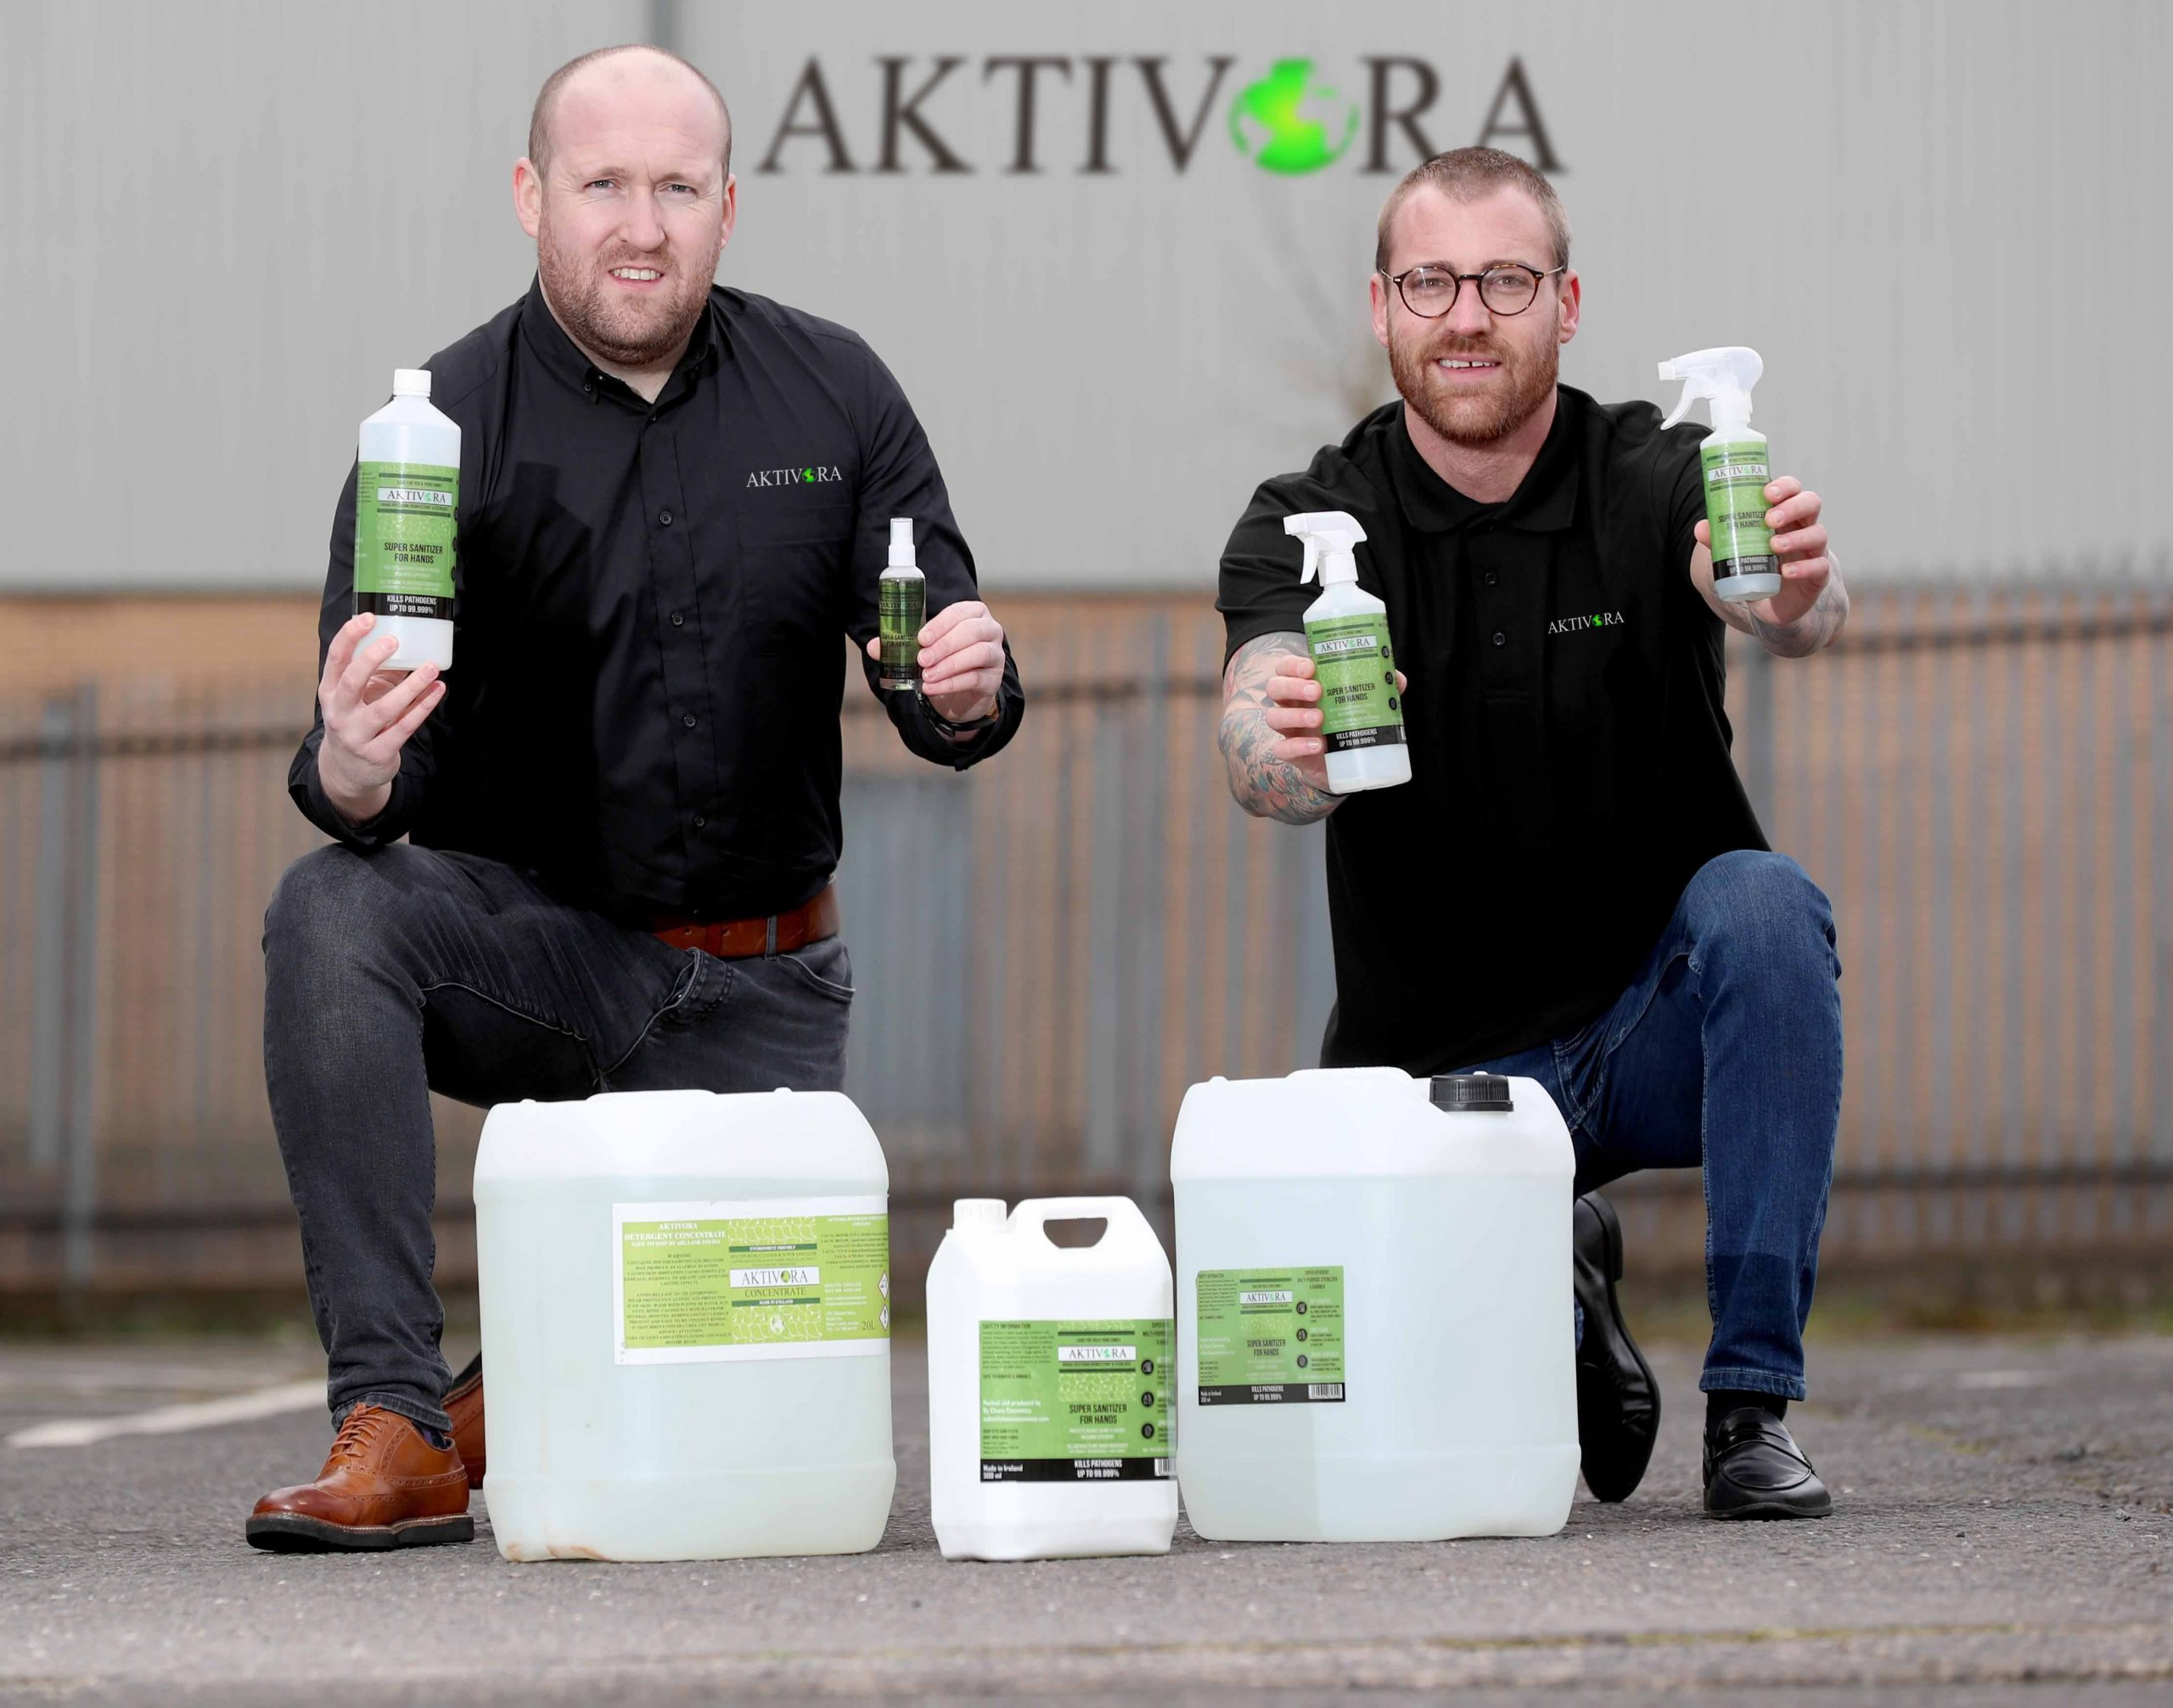 Aktivora in demand after becoming first sanitiser certified to kill COVID-19